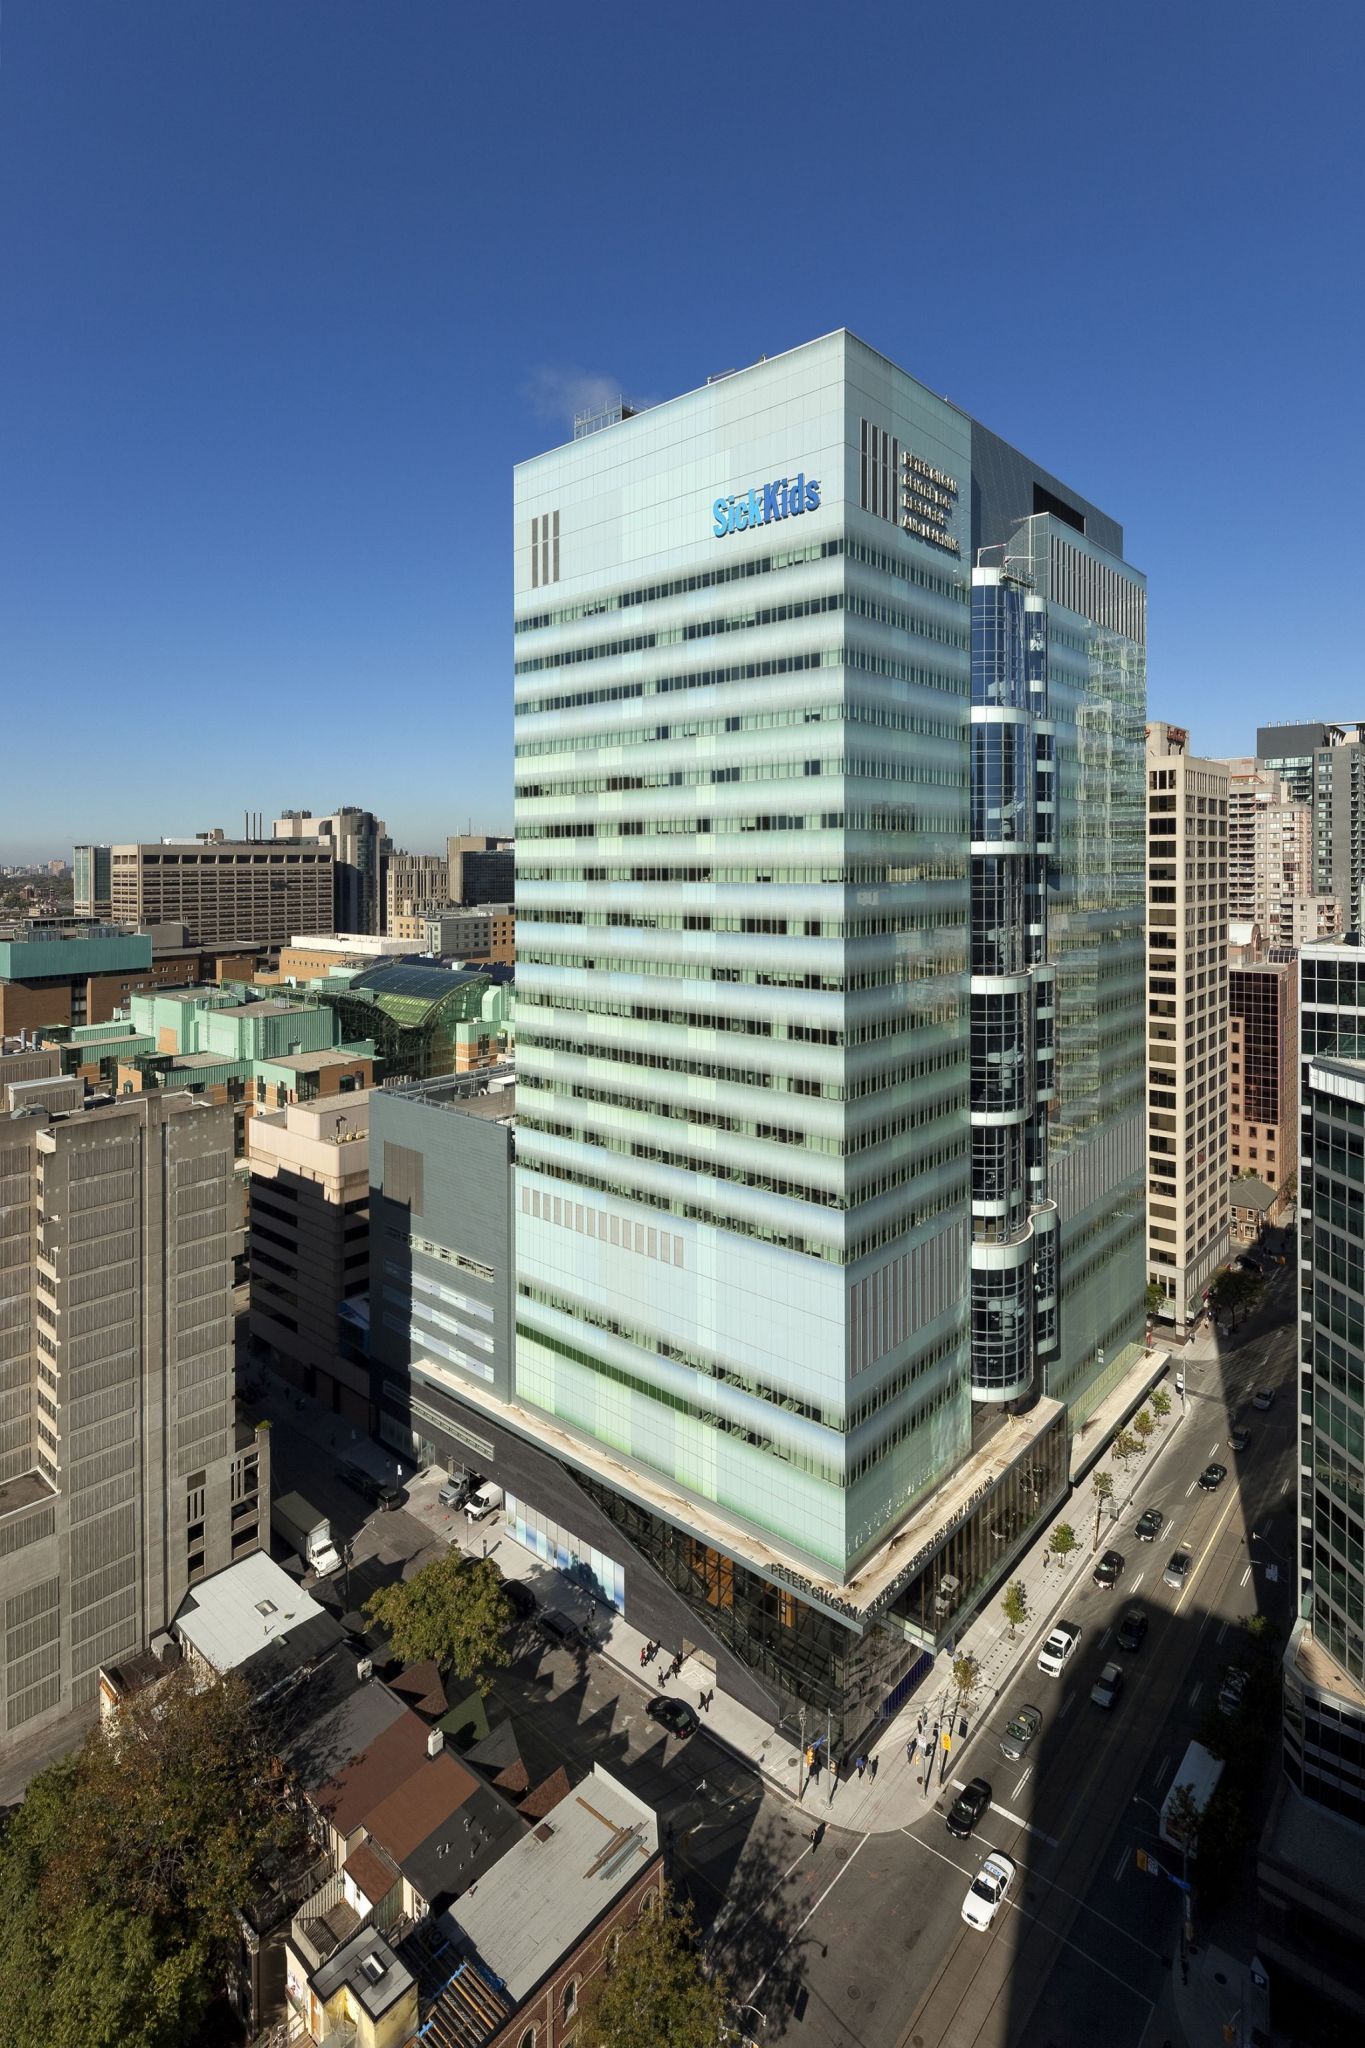 Health Insurance For Children >> Toronto's Hospital for Sick Children boasts new research centre - Construction Canada